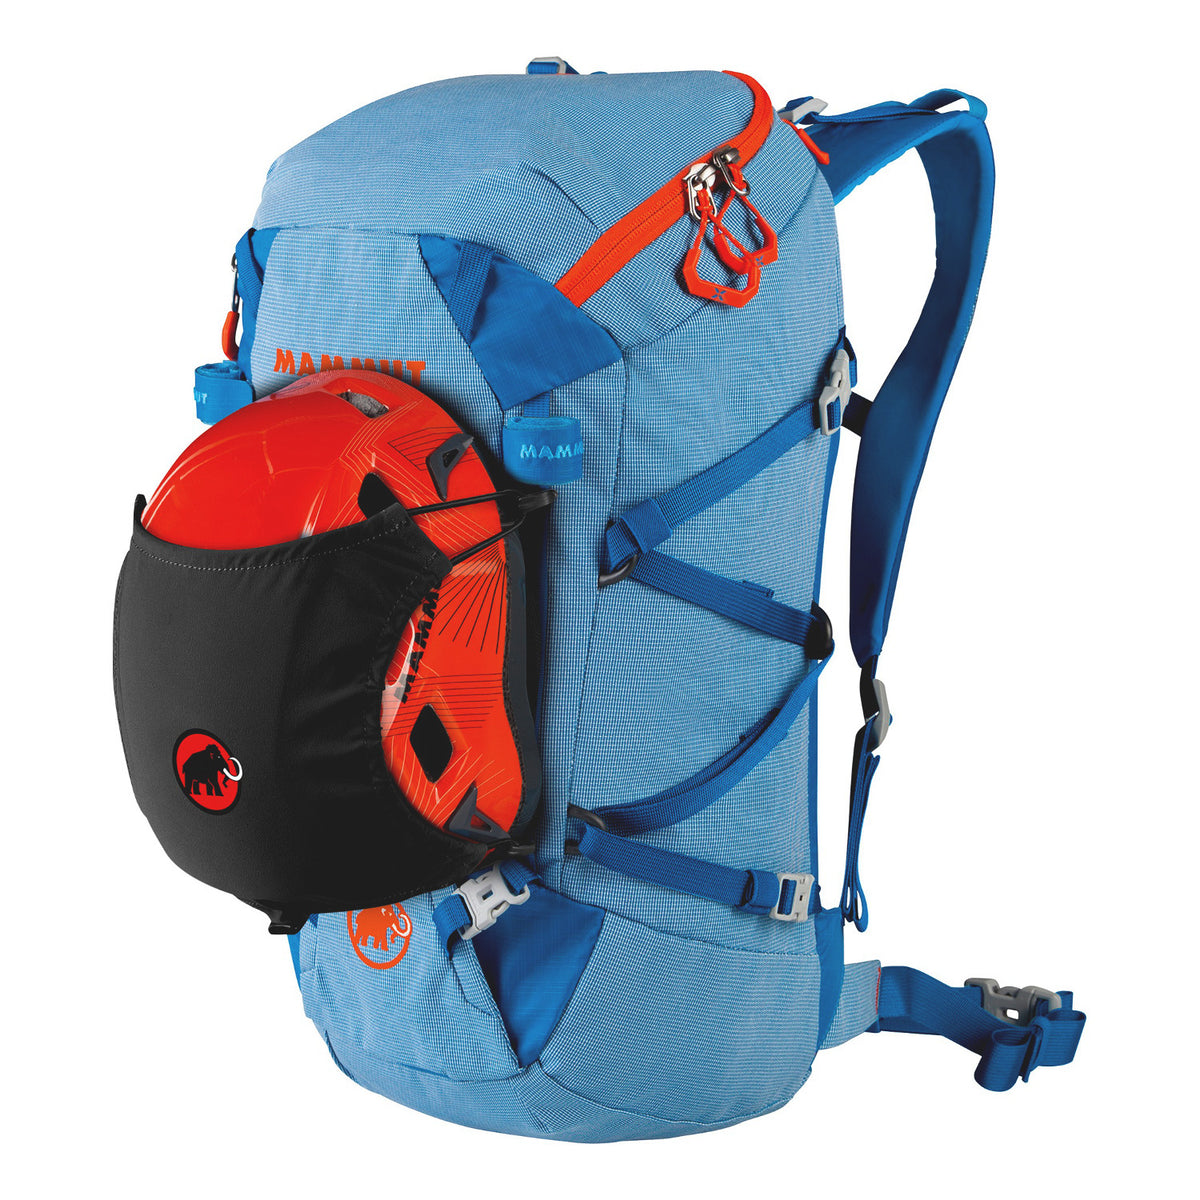 Mammut Helmet Holder shown in use with a helmet on a blue rucksack